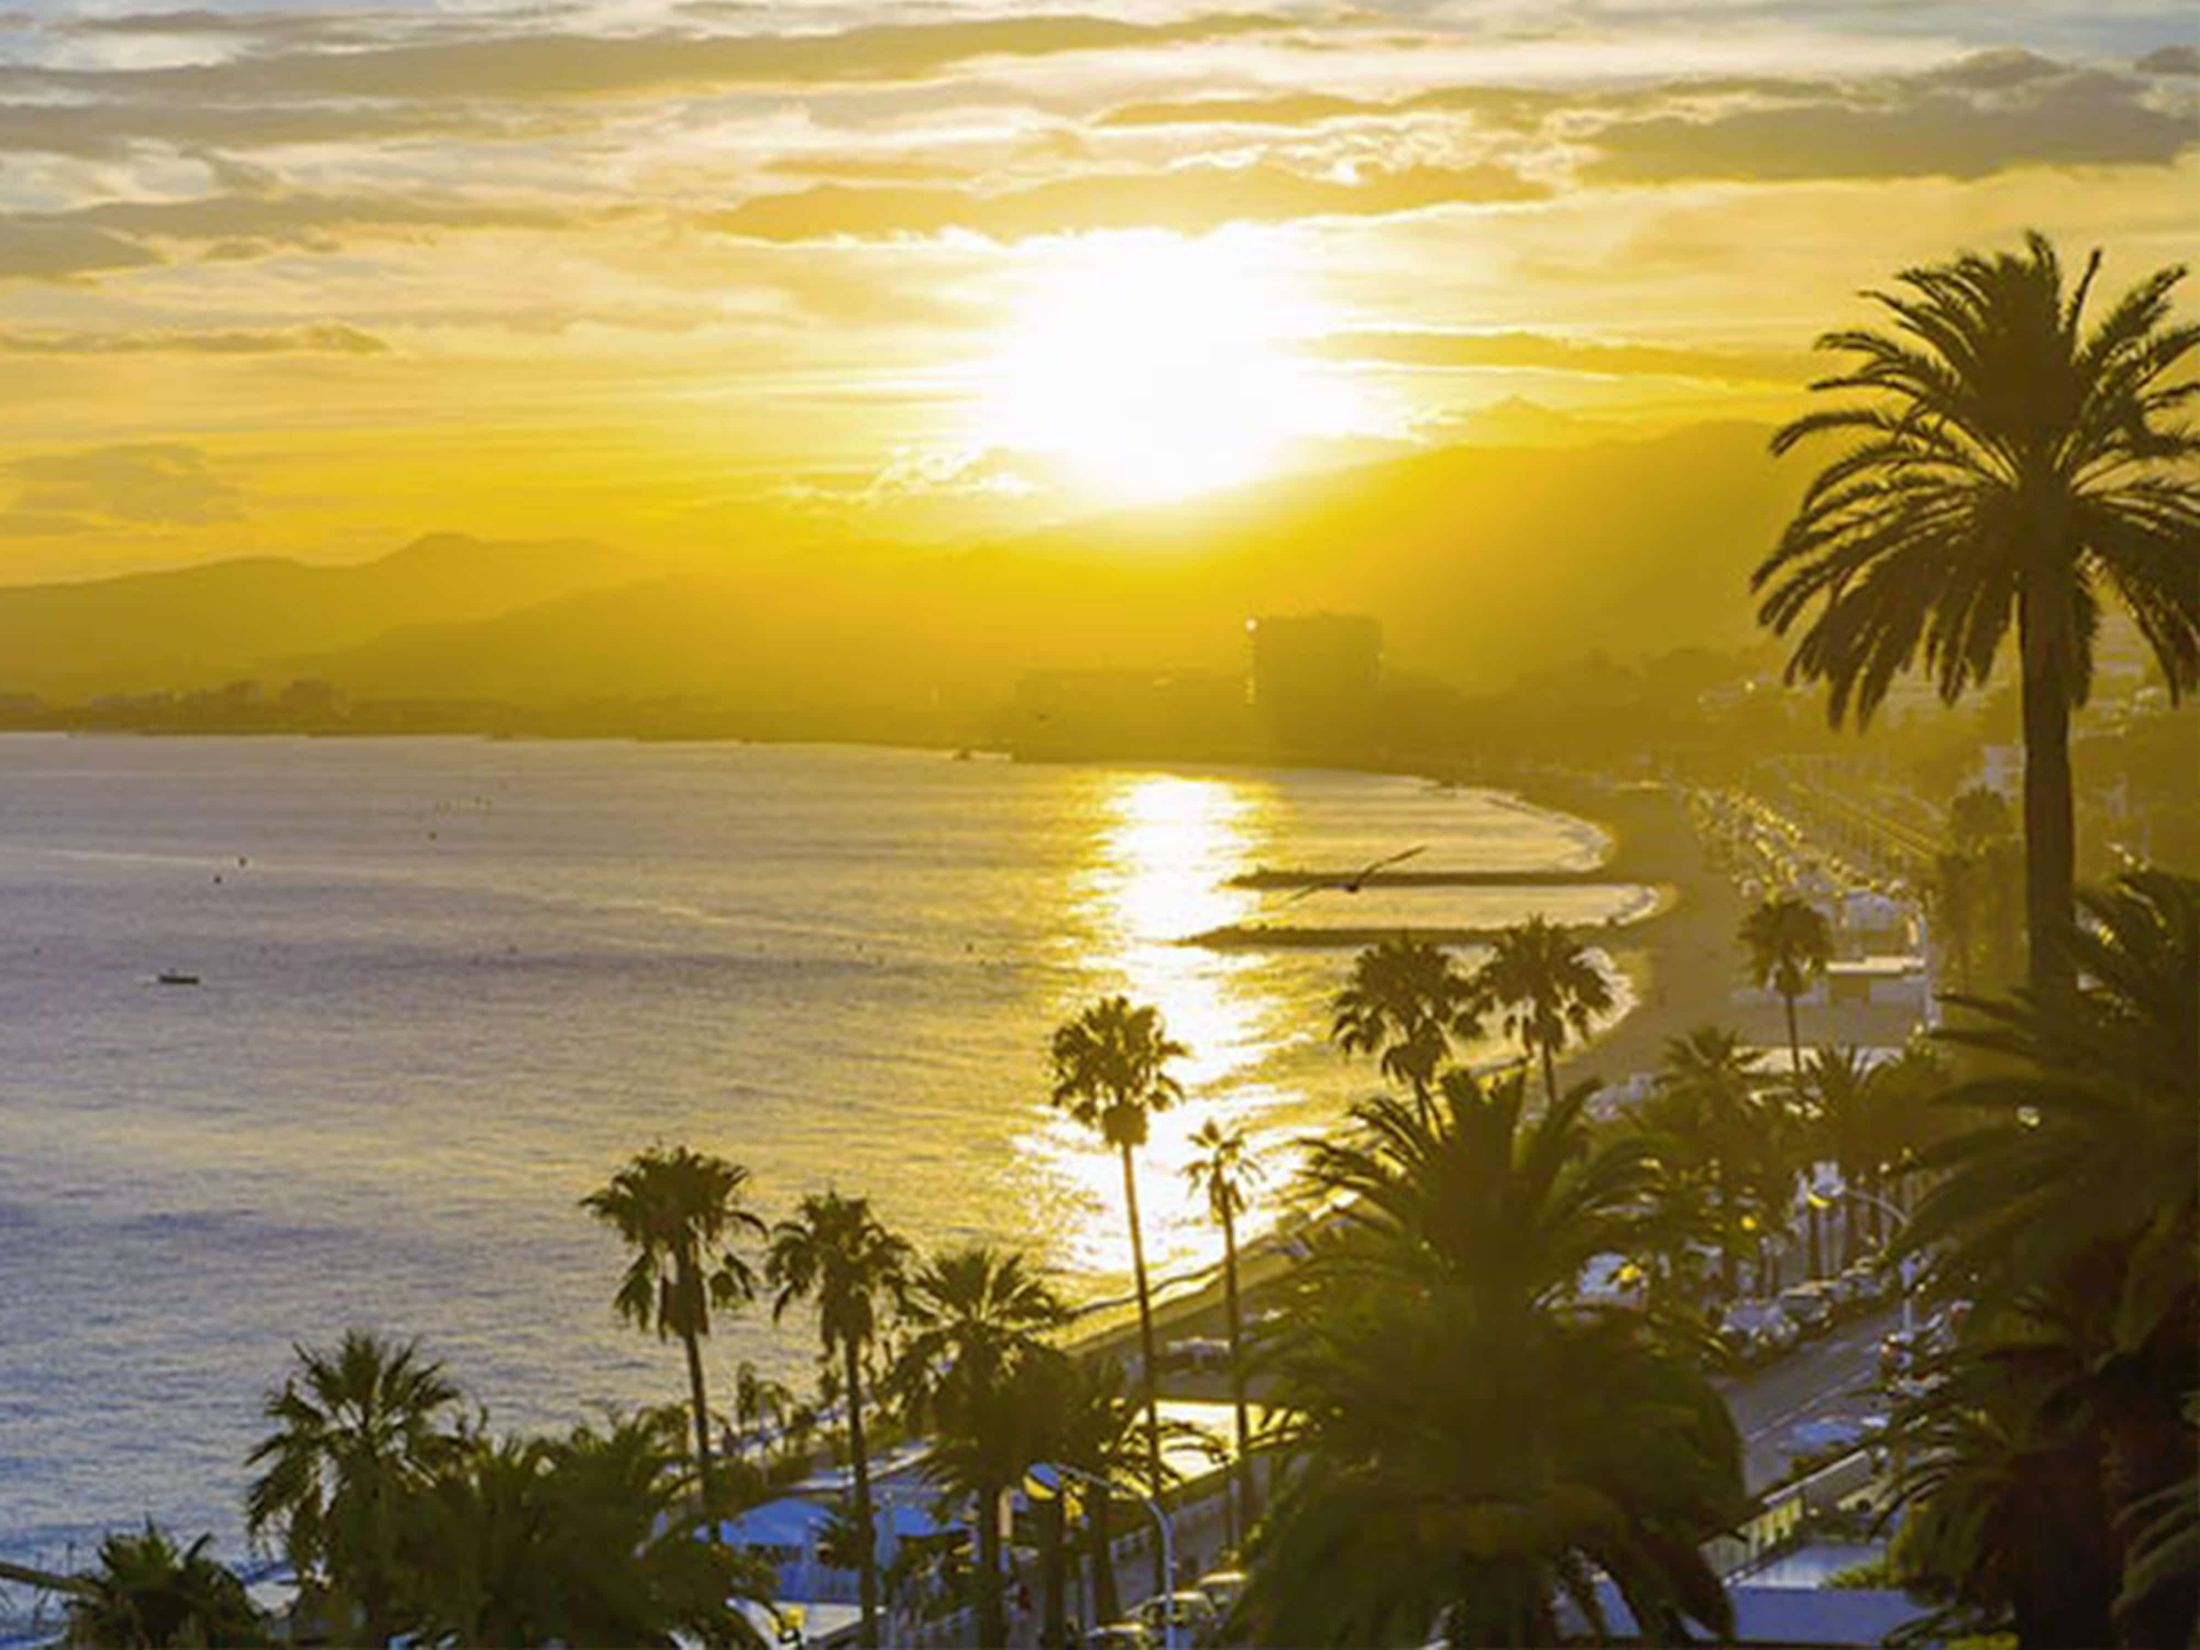 Discover Cannes in a new way